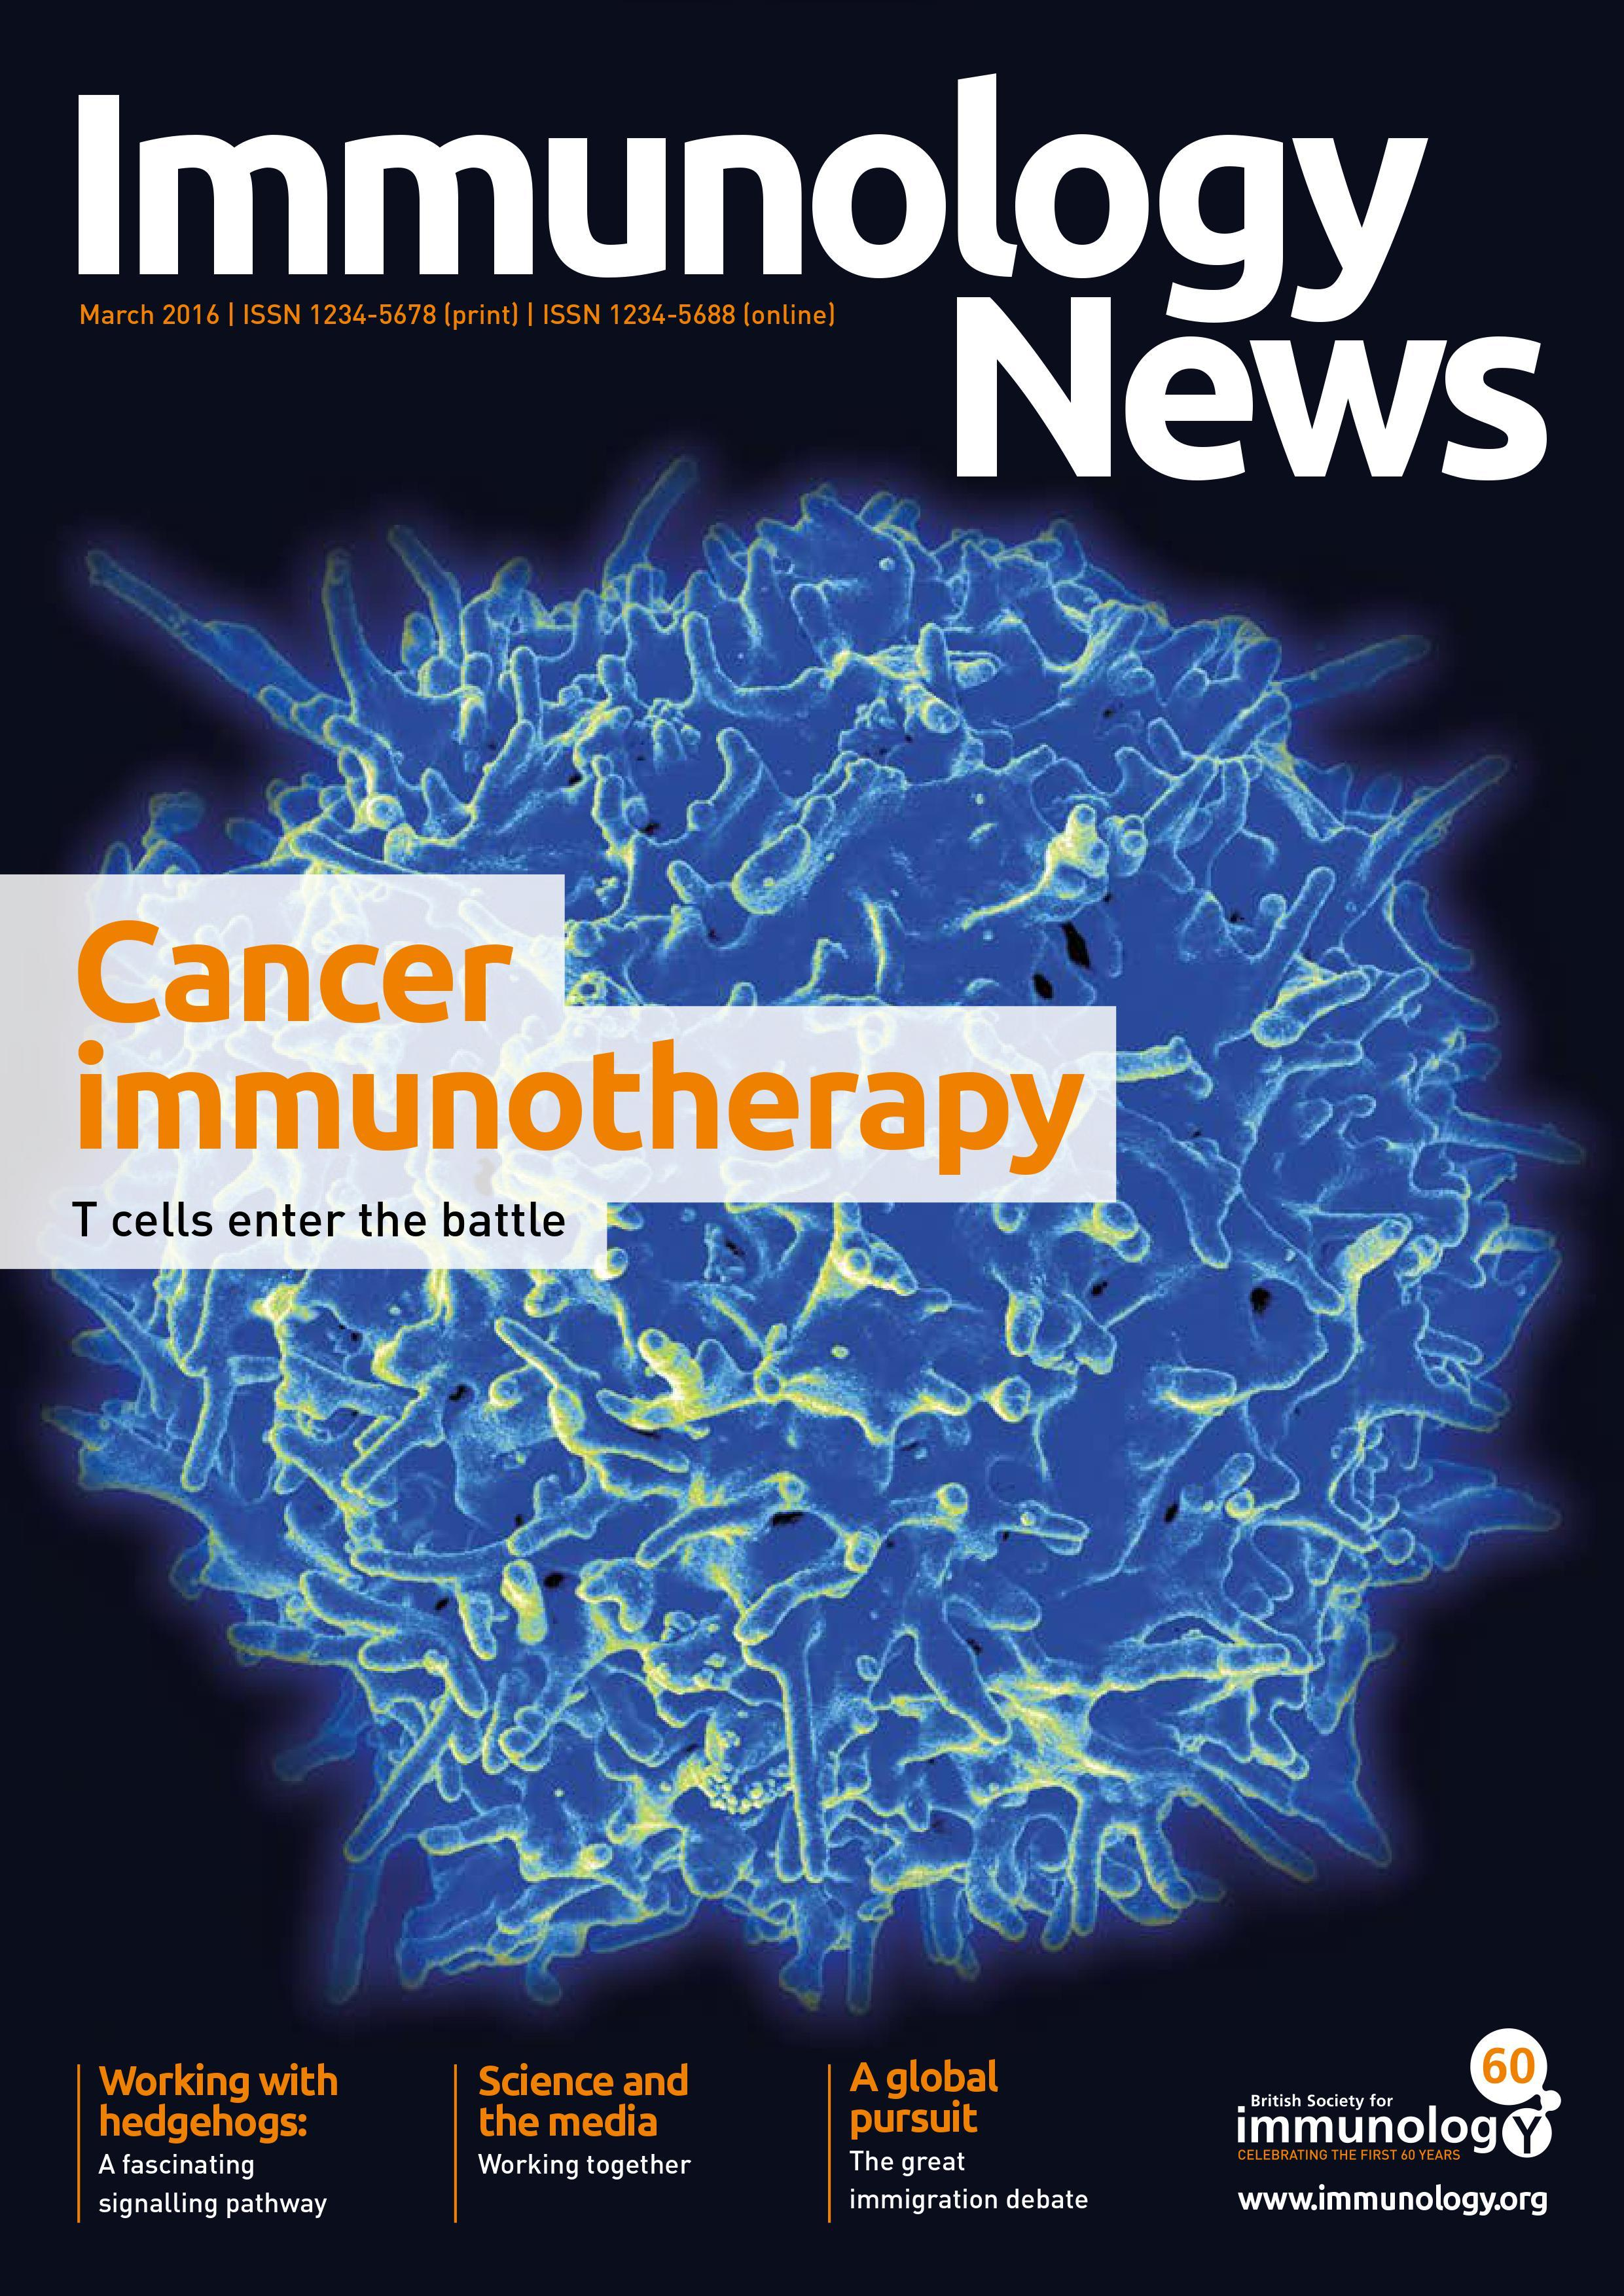 Immunology News March 2016 cover